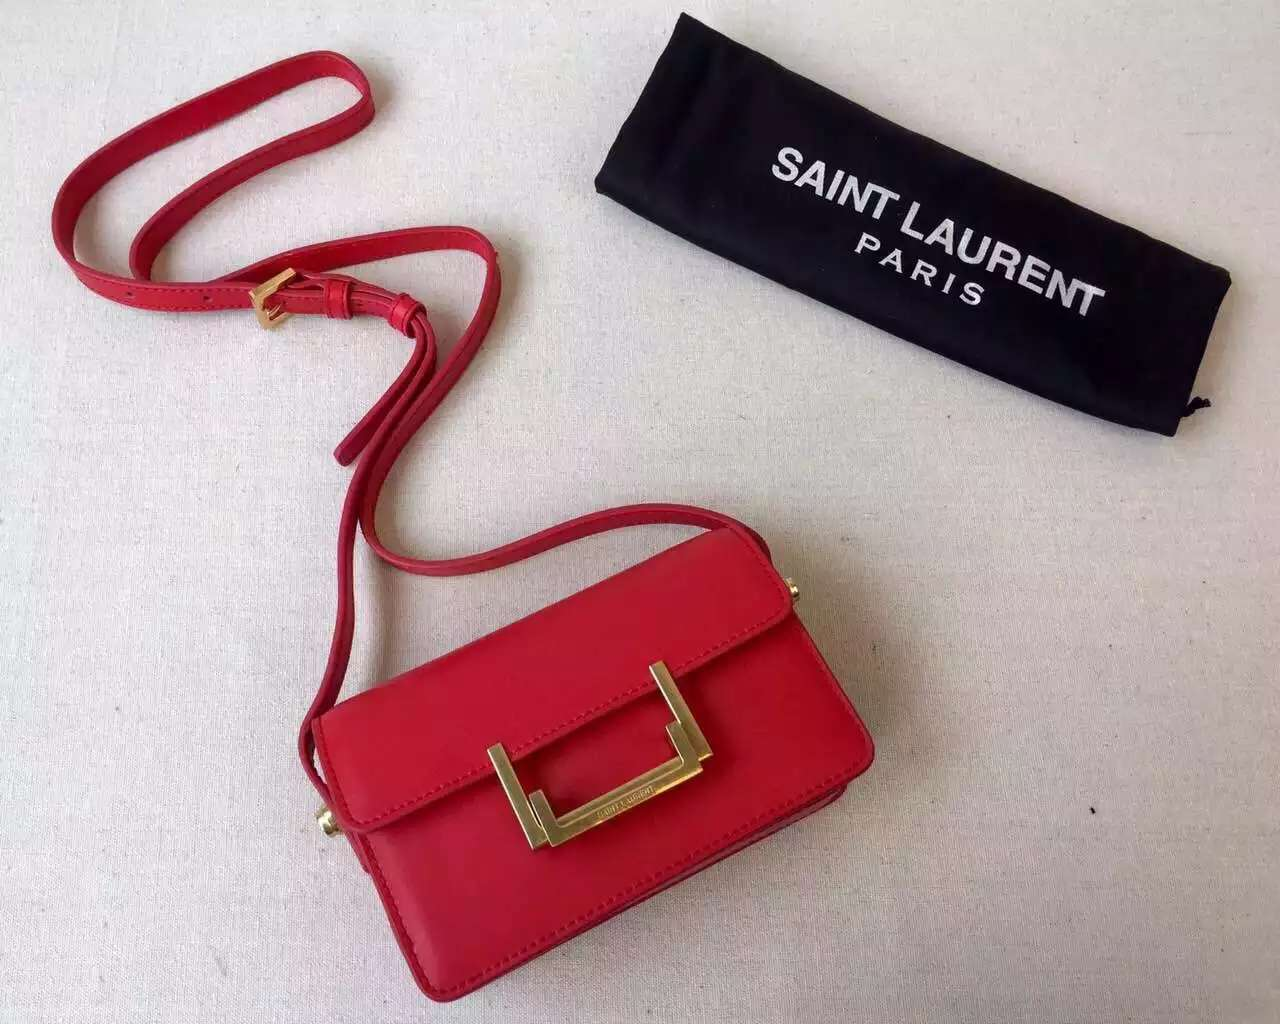 2015 Cheap YSL Out-Sale with Free Shipping-Saint Laurent Classic Small Lulu Leather Bag in Red Calfskin Leather